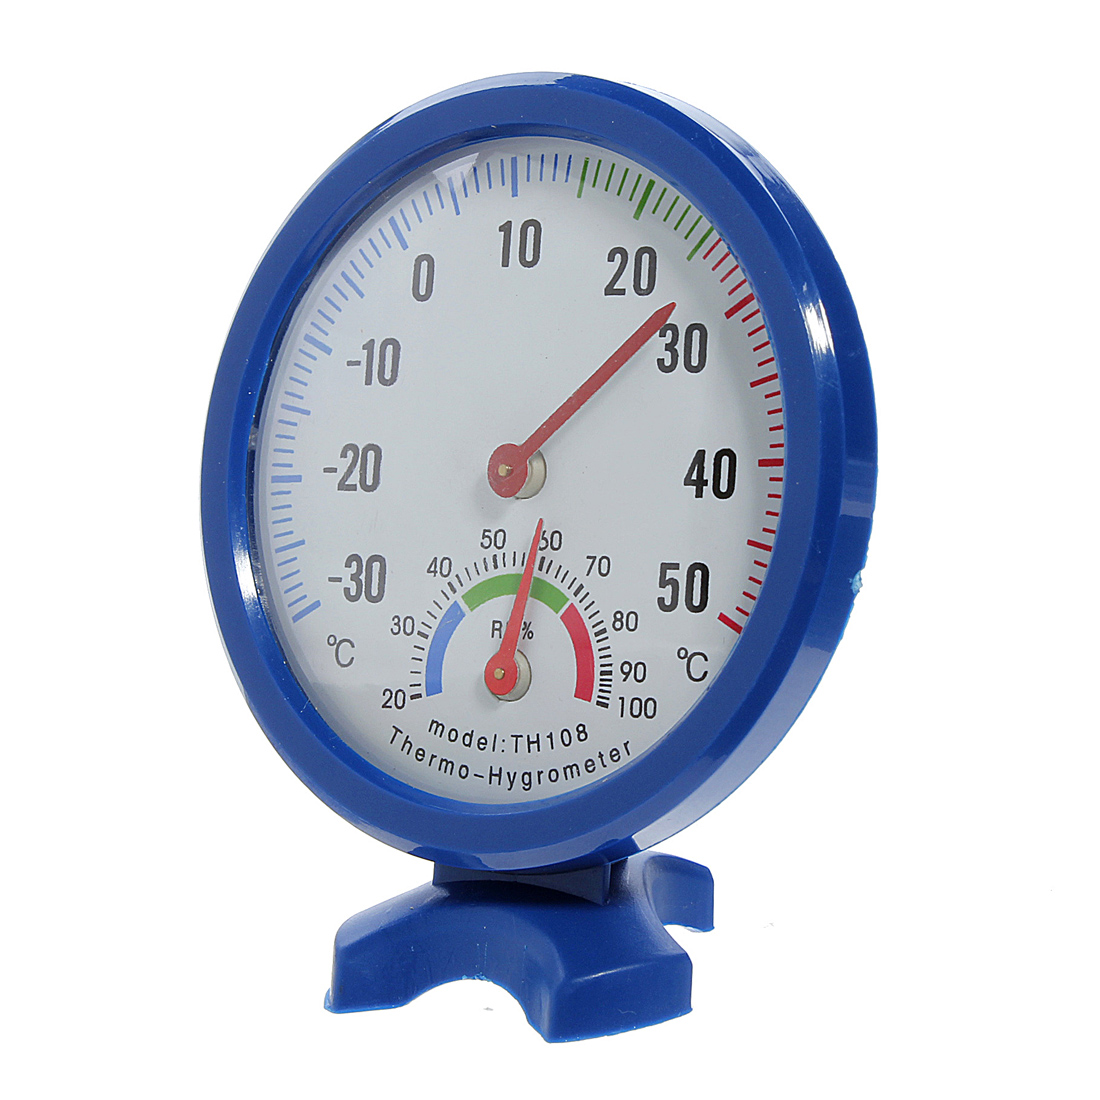 Indoor Outdoor Wall Hygrometer Humidity Thermometer Temperature Meter #23448A